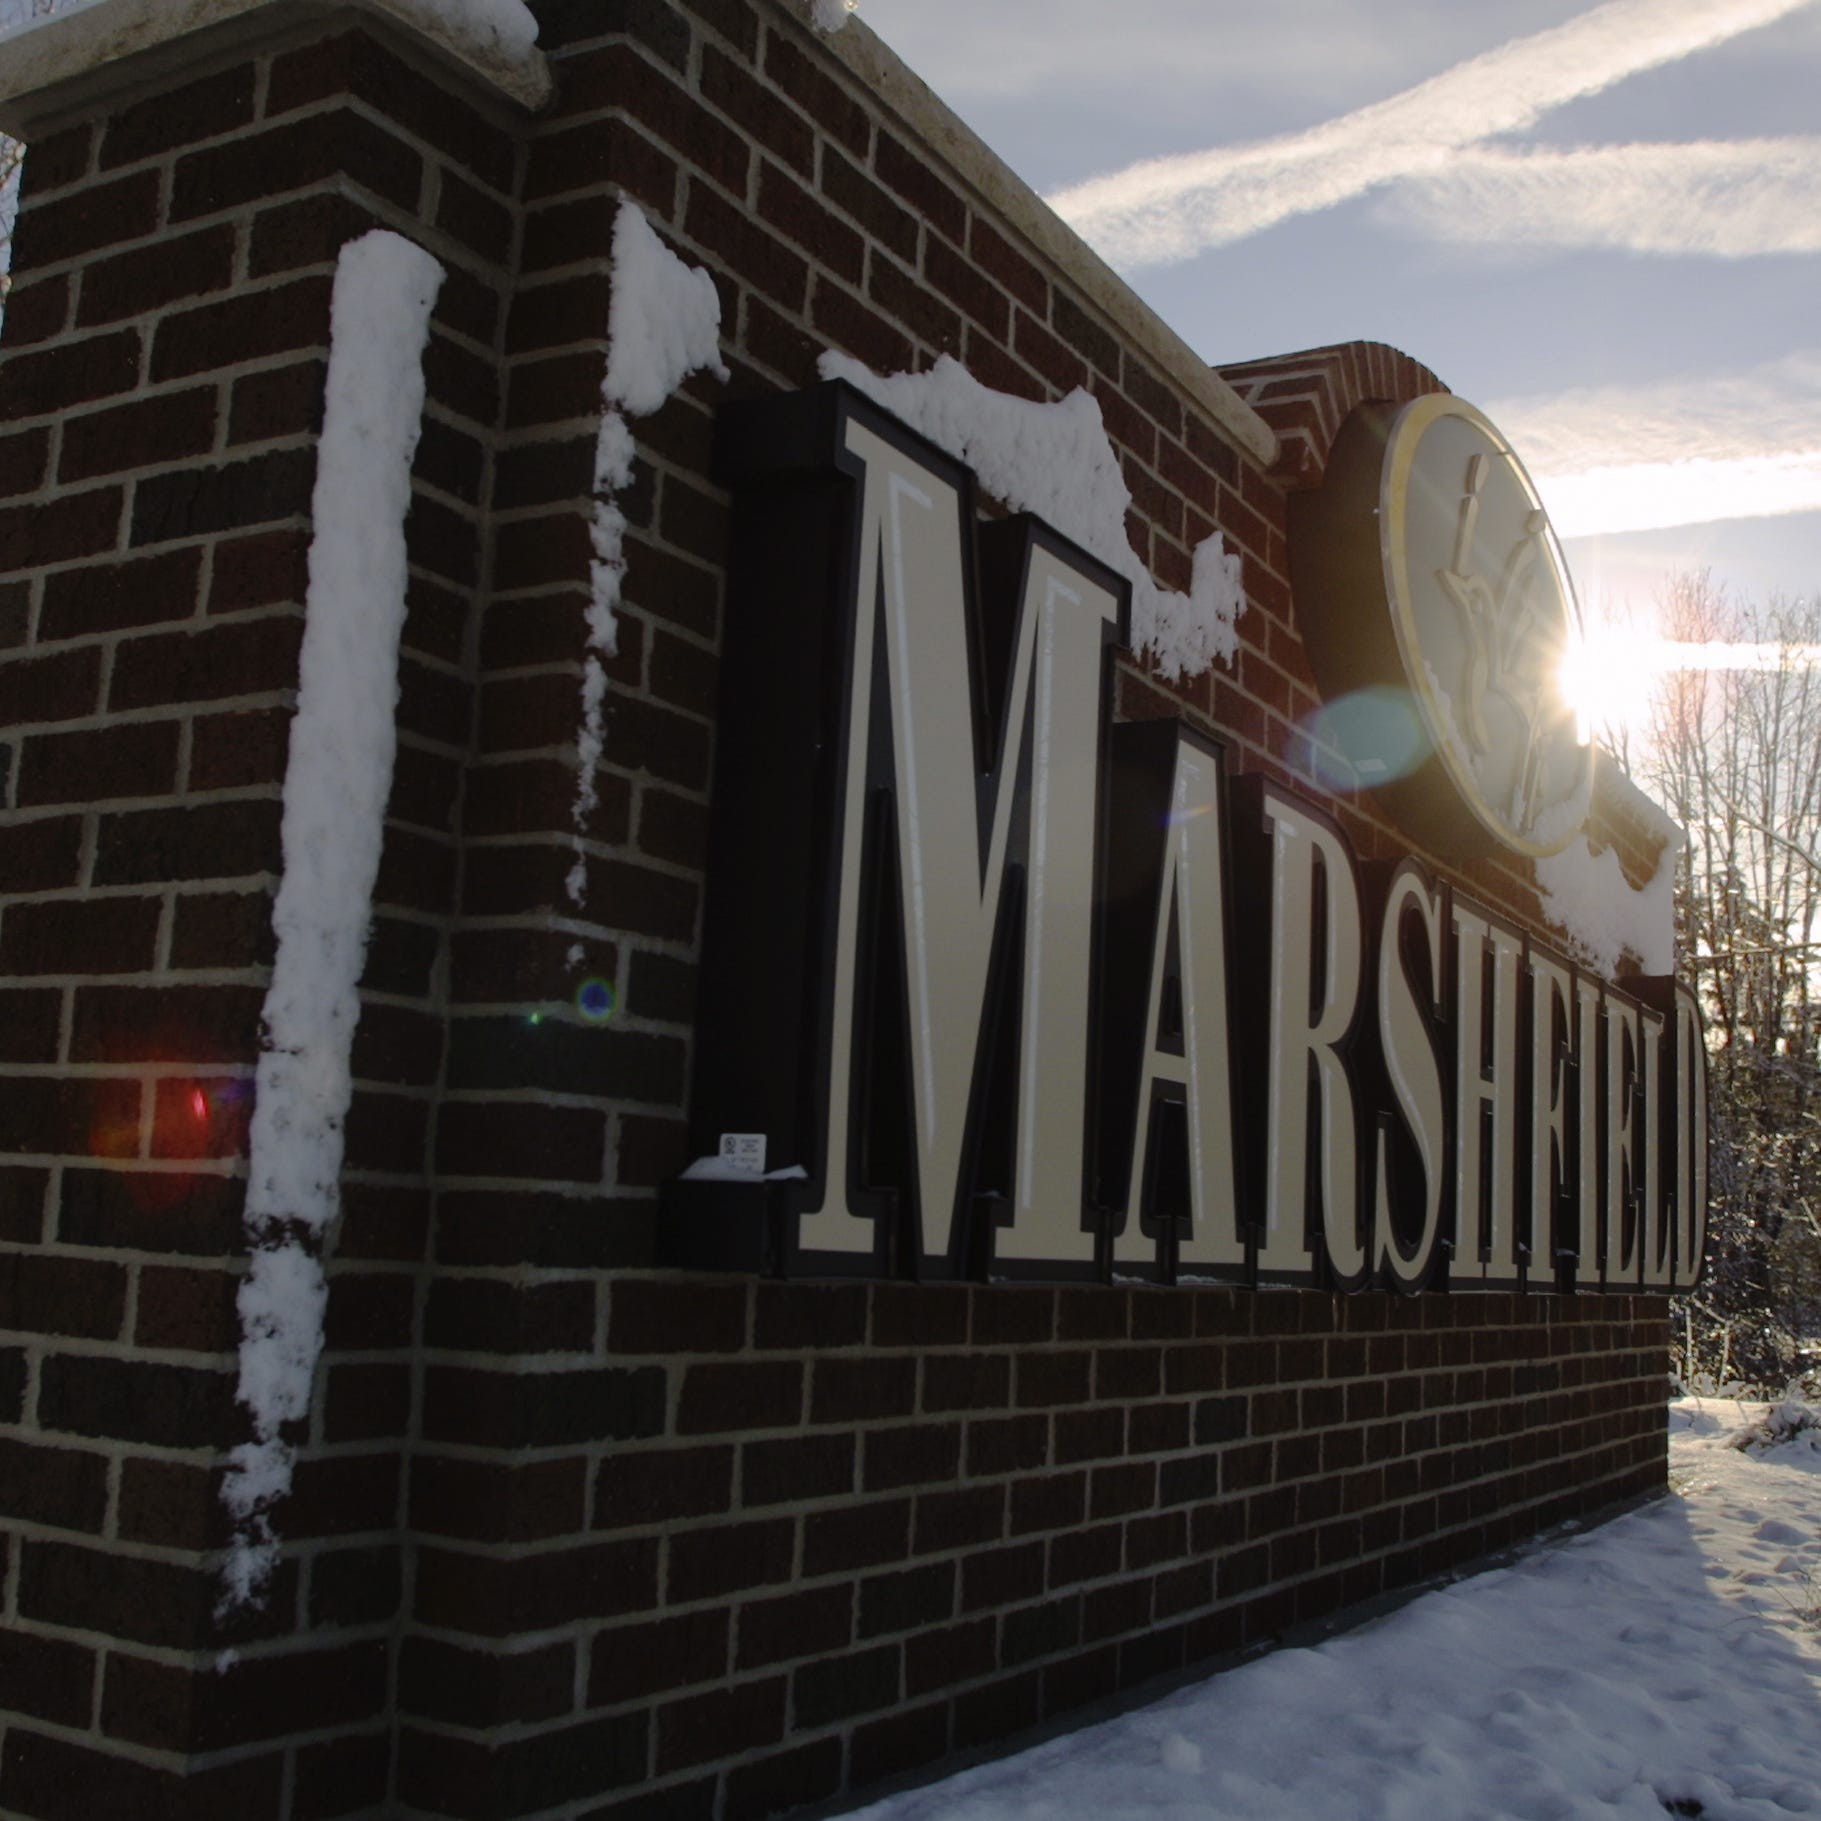 City of Marshfield unveils increased tax rate in 2019 budget proposal